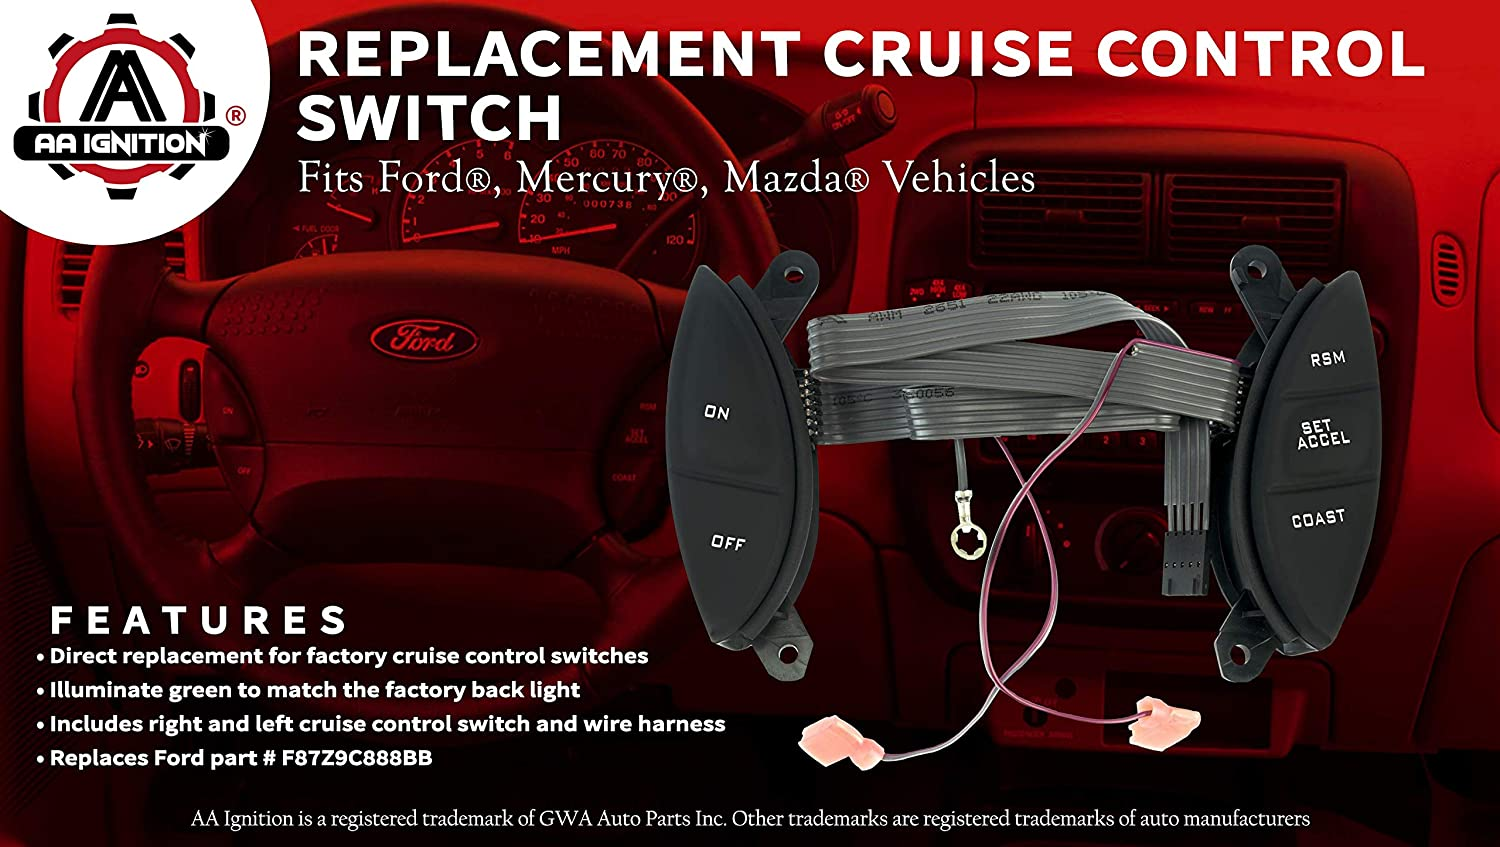 Steering Wheel Mounted Cruise Control Switch - Fits Ford Explorer, Explorer  Sport Trac, Ranger and more - Cruise Control Switch F150 Steering Controls